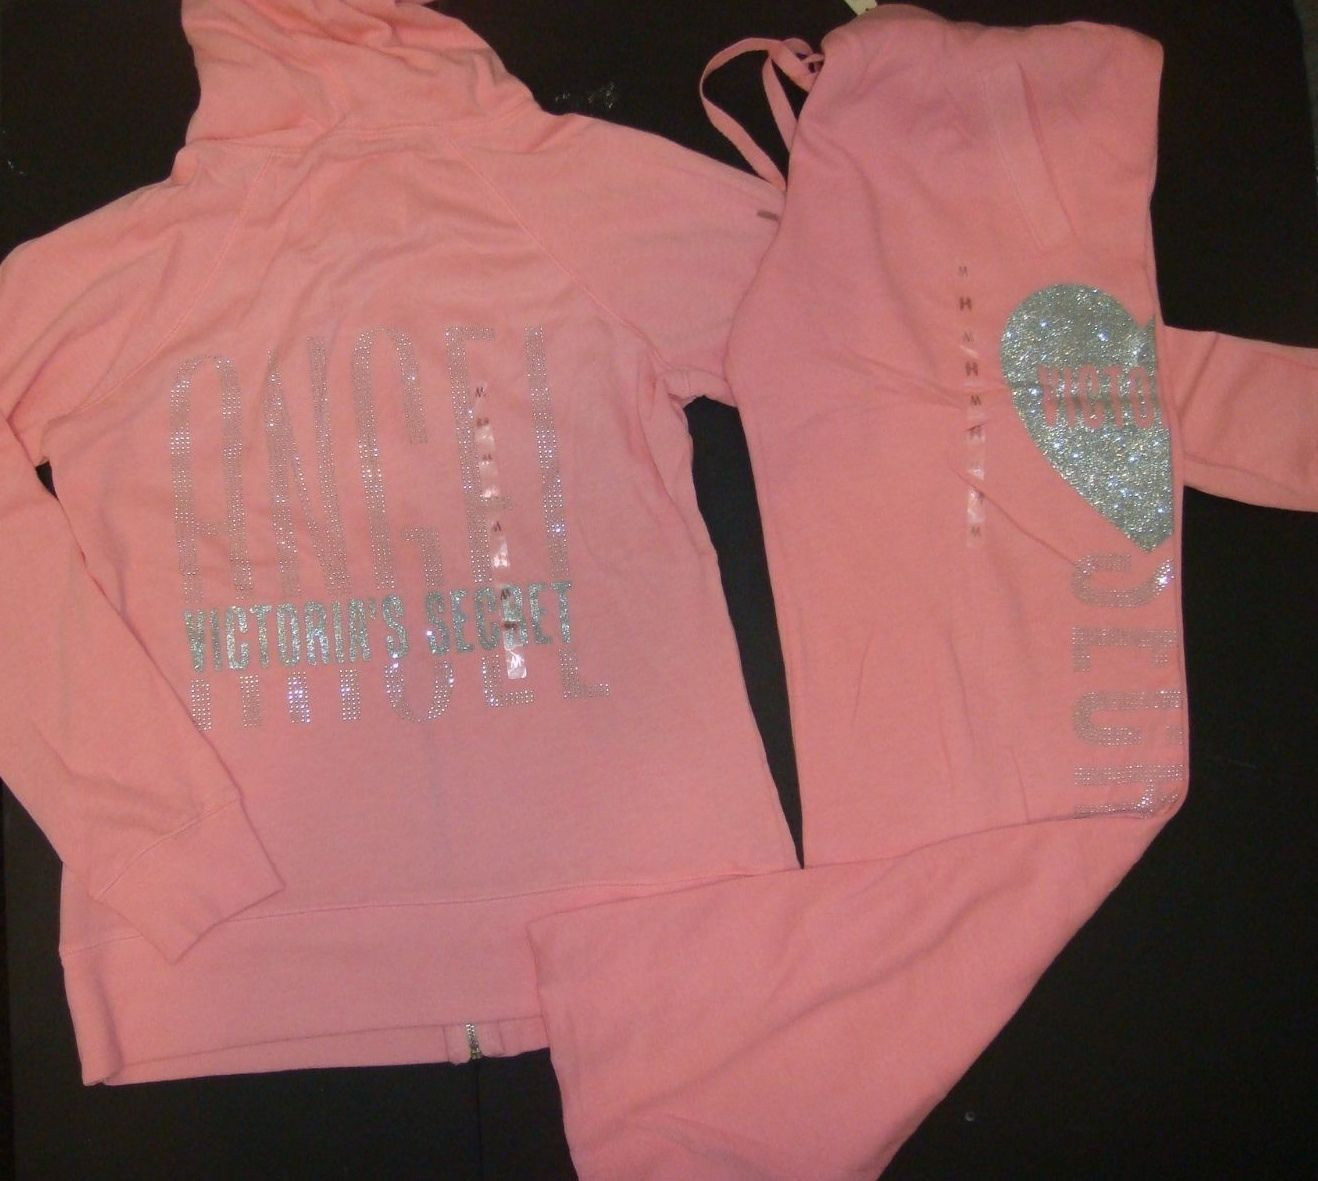 41a050388ad1c Victoria's Secret M HOODIE+sweatpants Peach and 50 similar items